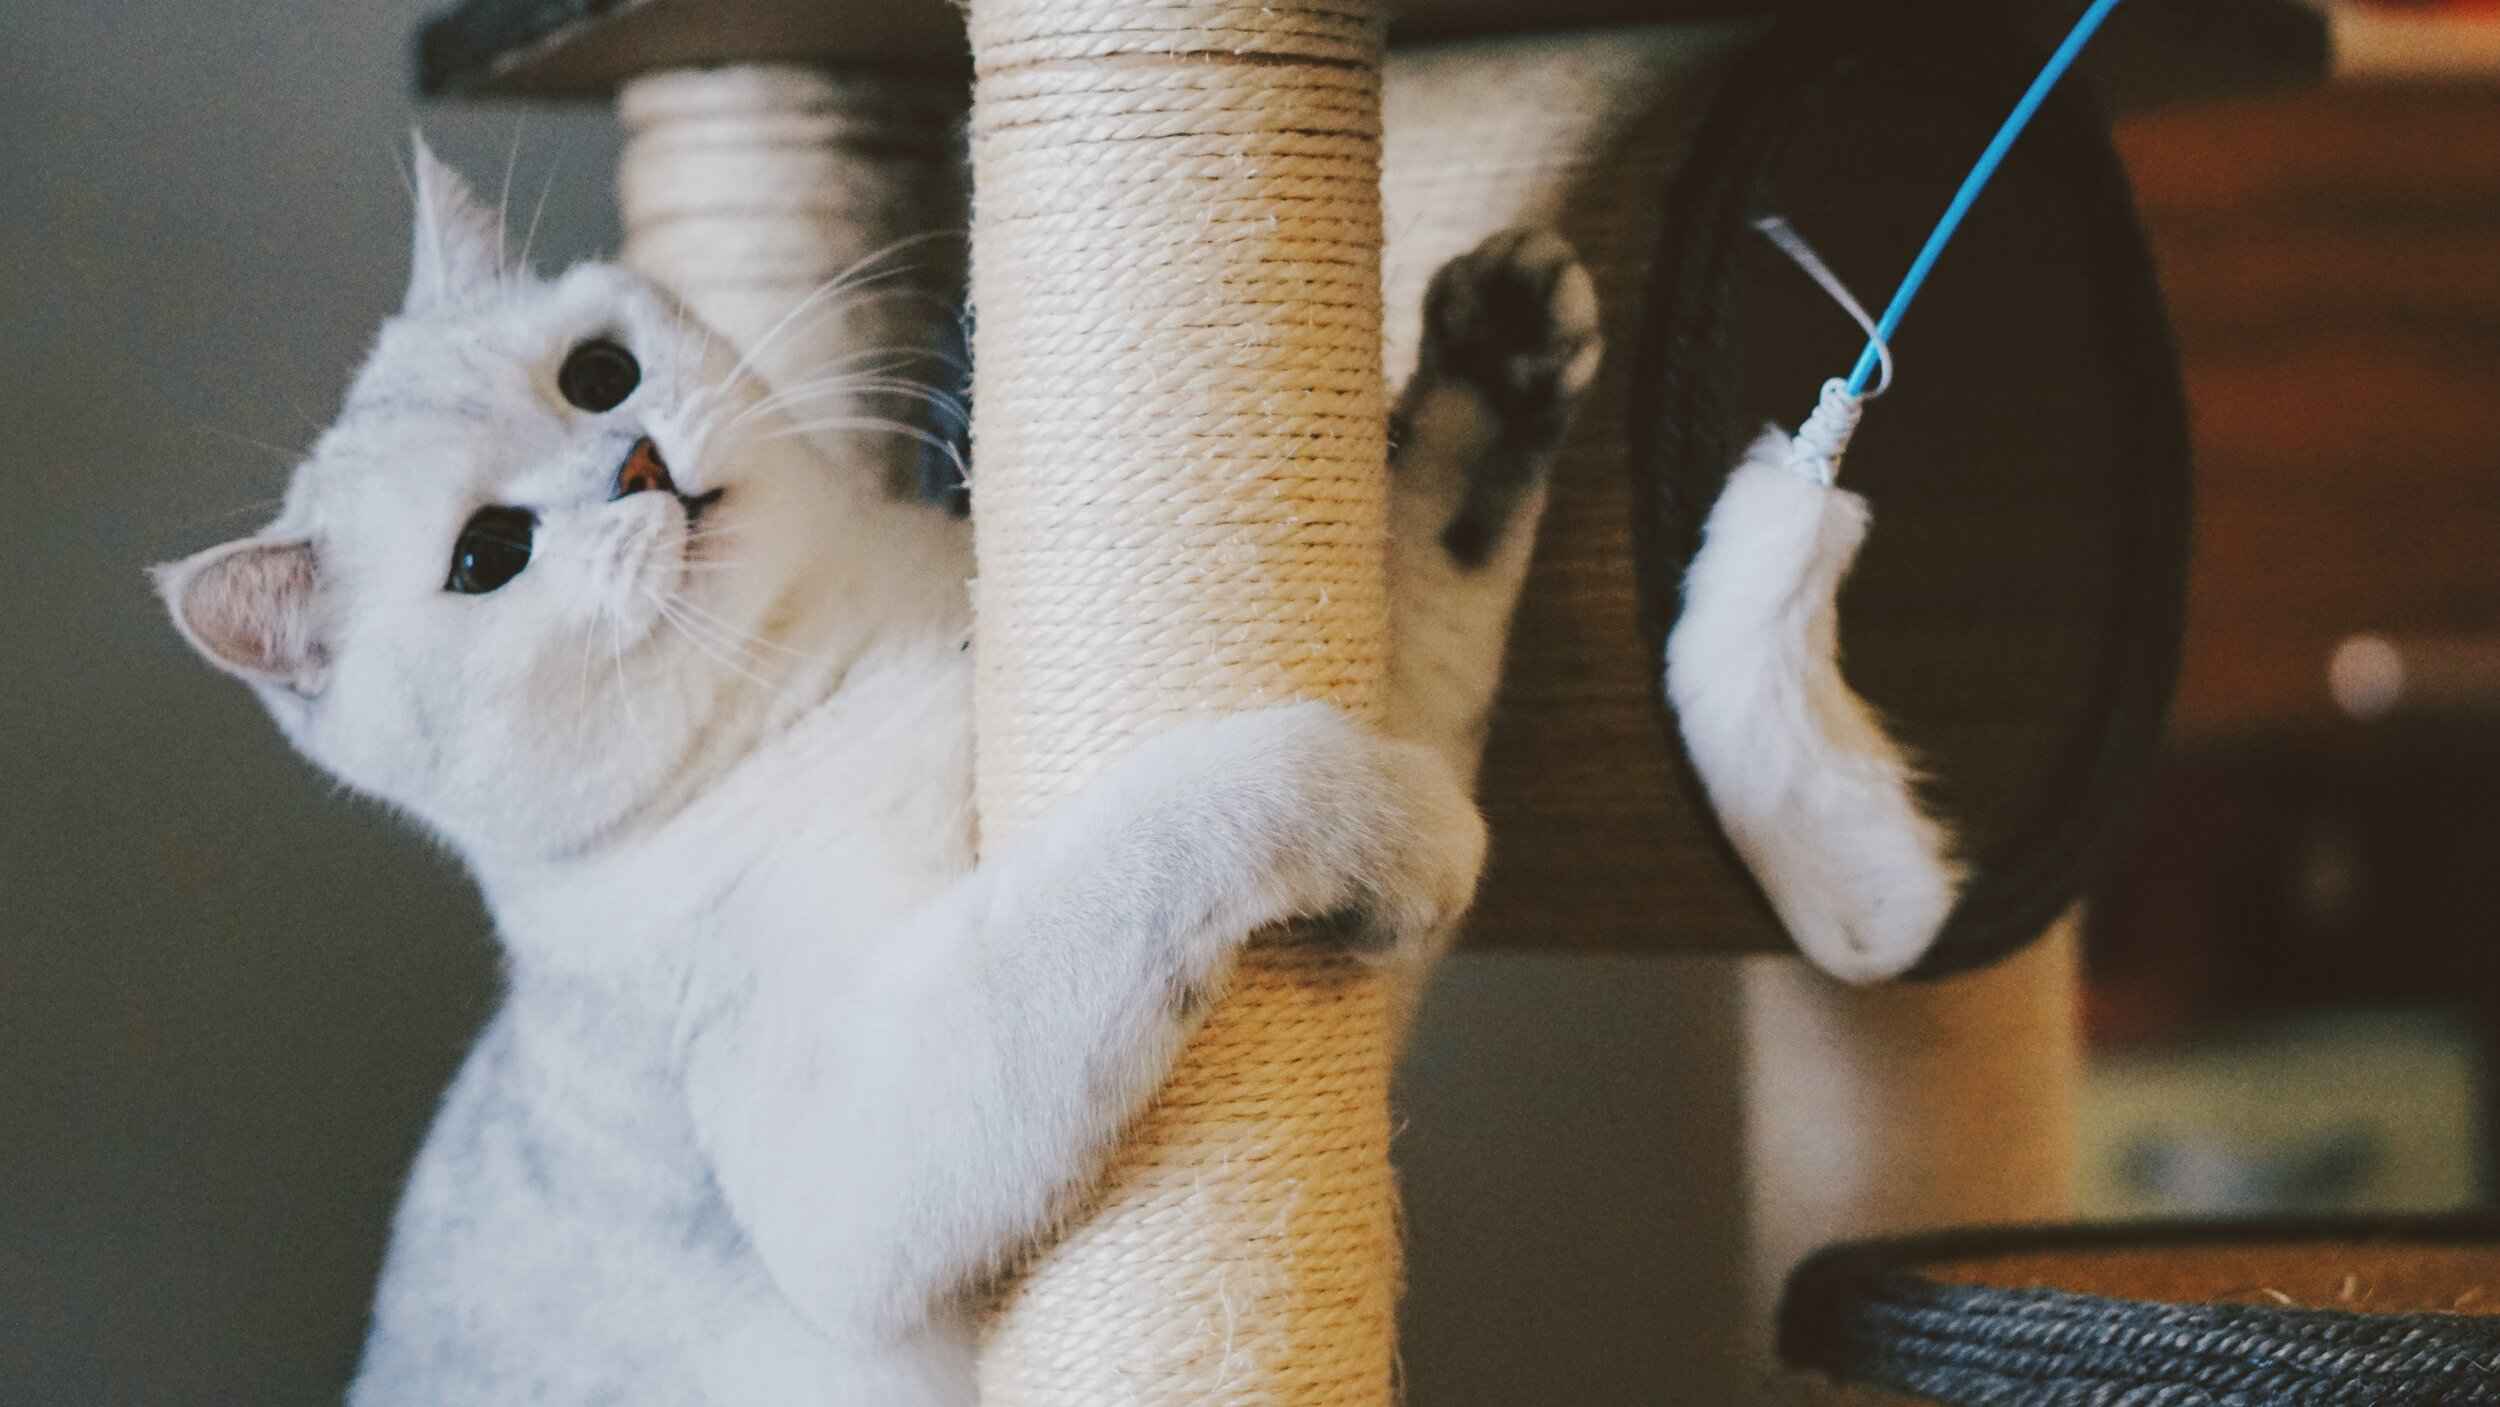 Scratch poles helps file down nails and lets your cat mark her territory.